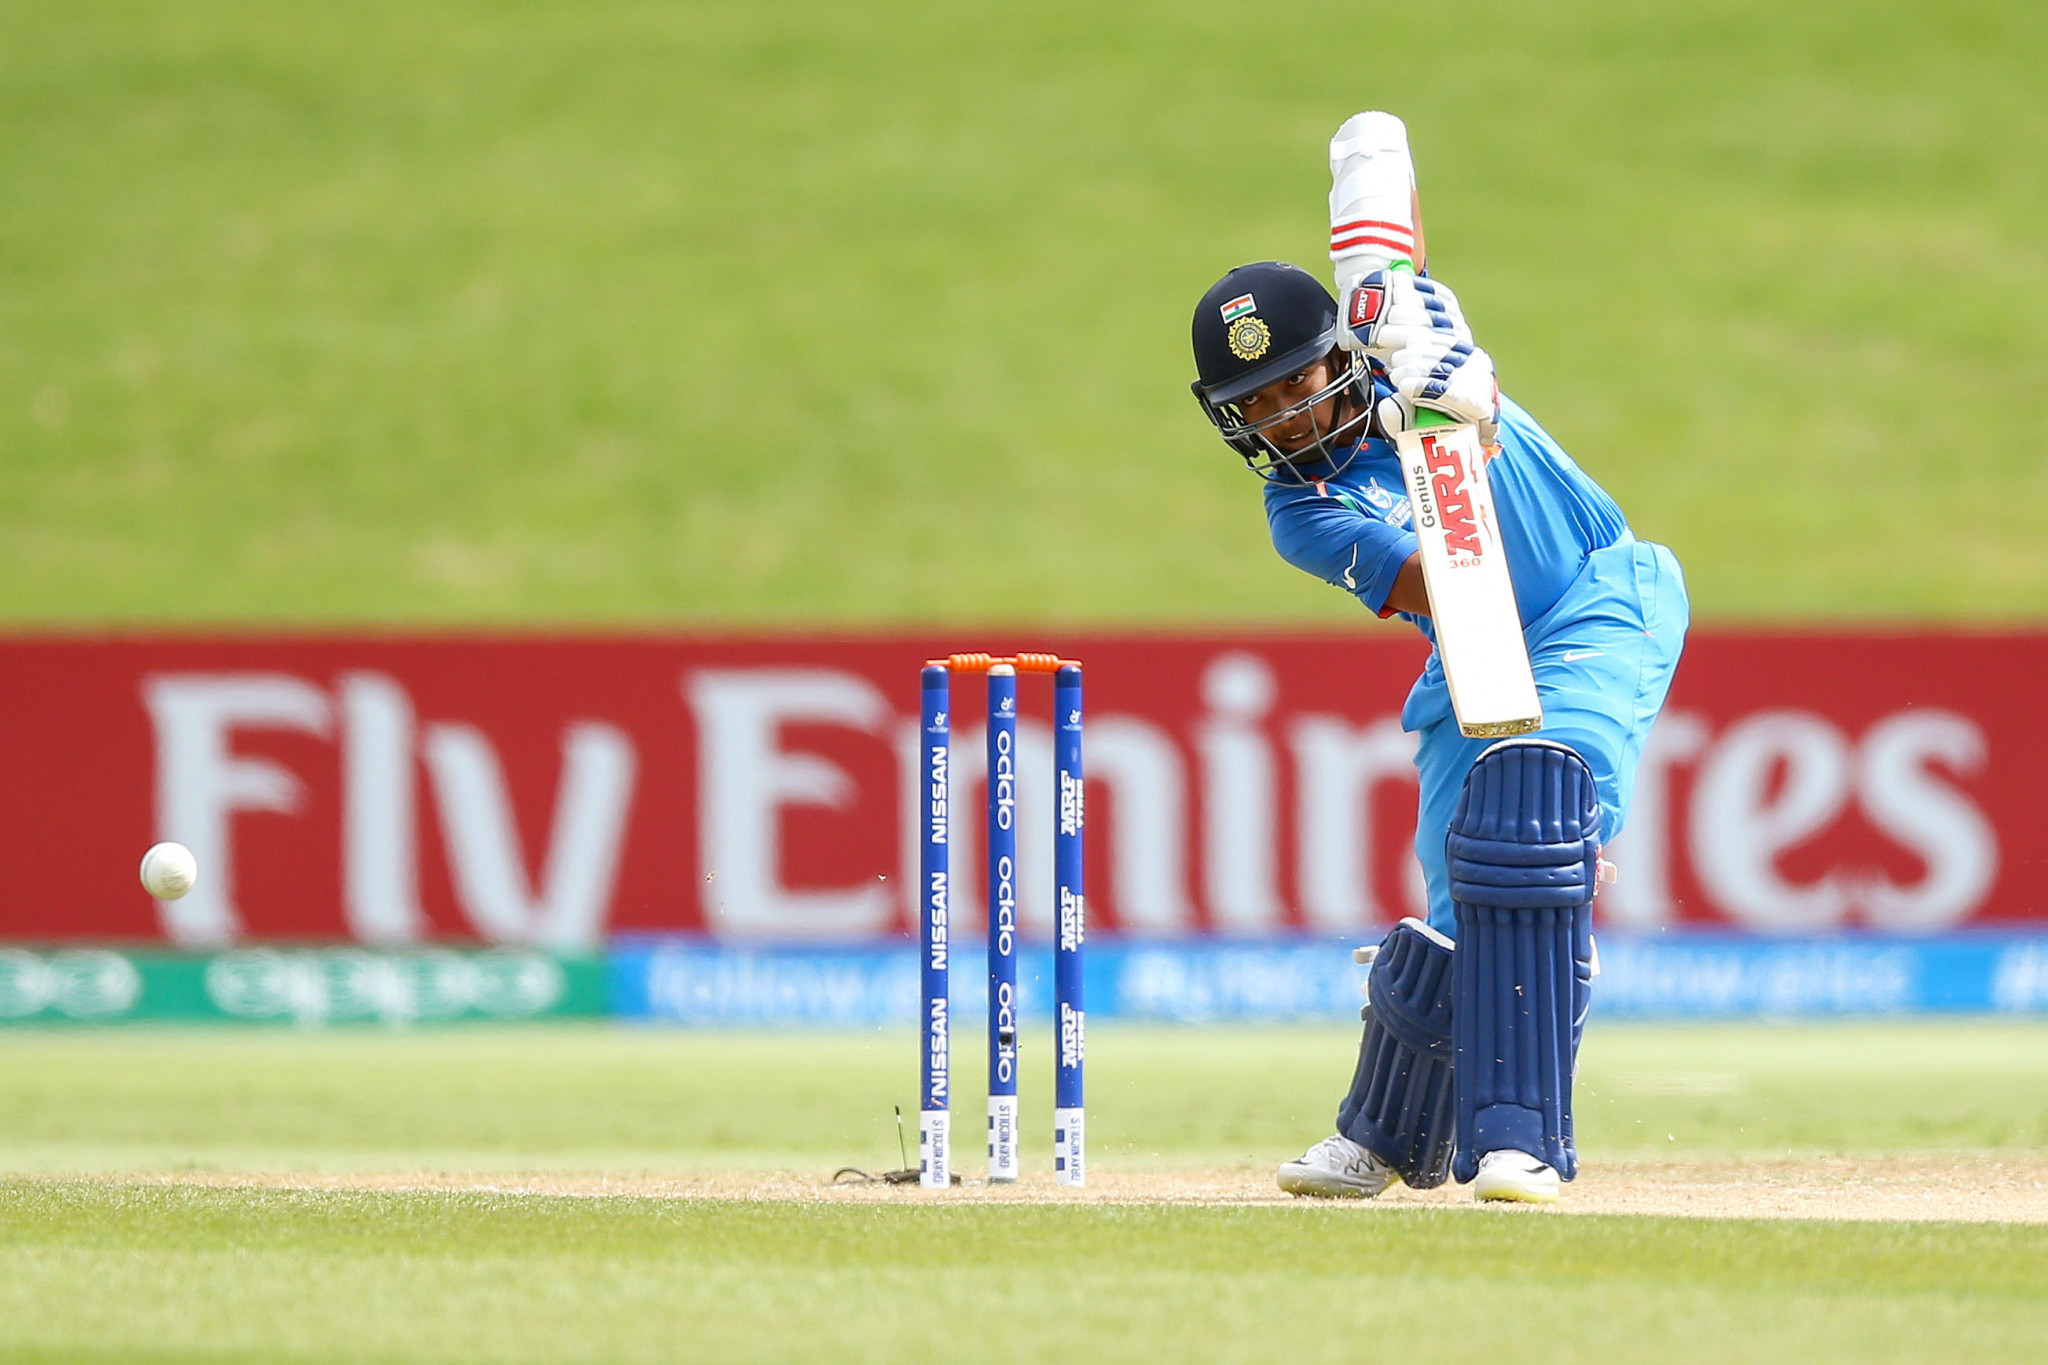 India impressively beat Bangladesh to set up semi-final with Pakistan at ICC Under-19 World Cup